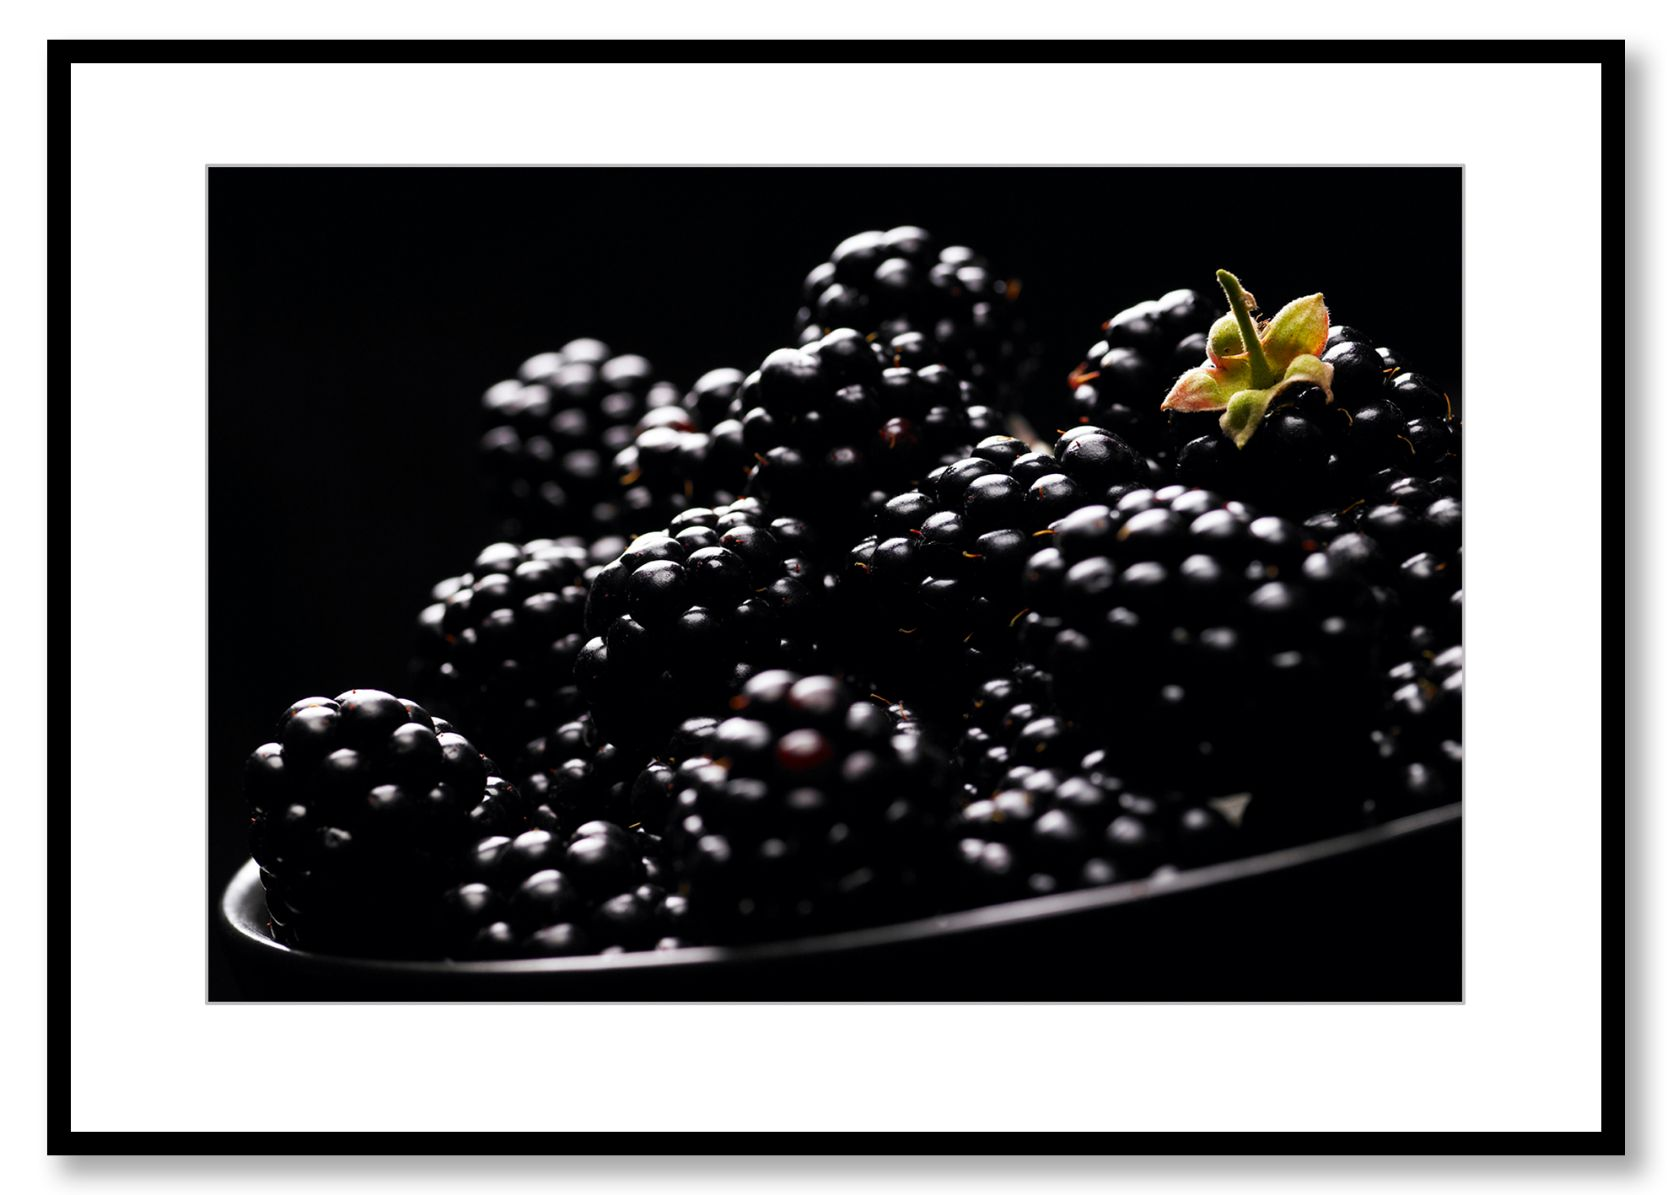 Blackberries, Food Art. Prints for Sale. Photo by Fredrik Rege